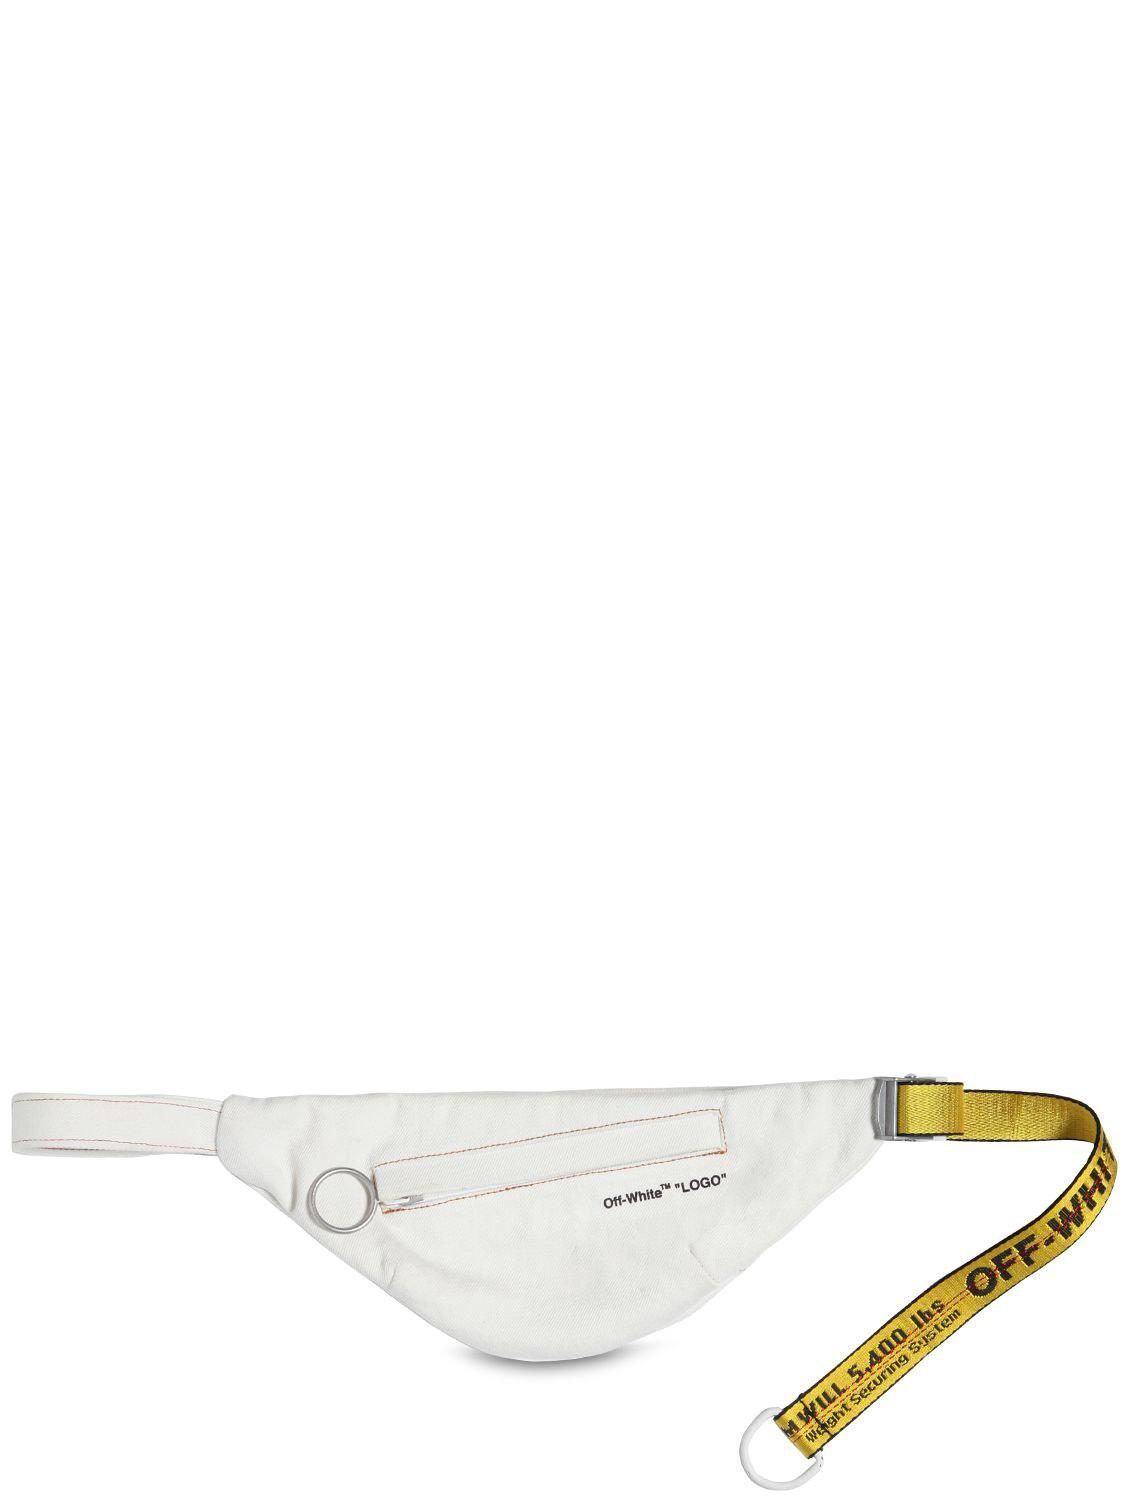 962e020eaa86a Off-White c/o Virgil Abloh. Men's White Logo Strap Cotton Denim Belt Bag